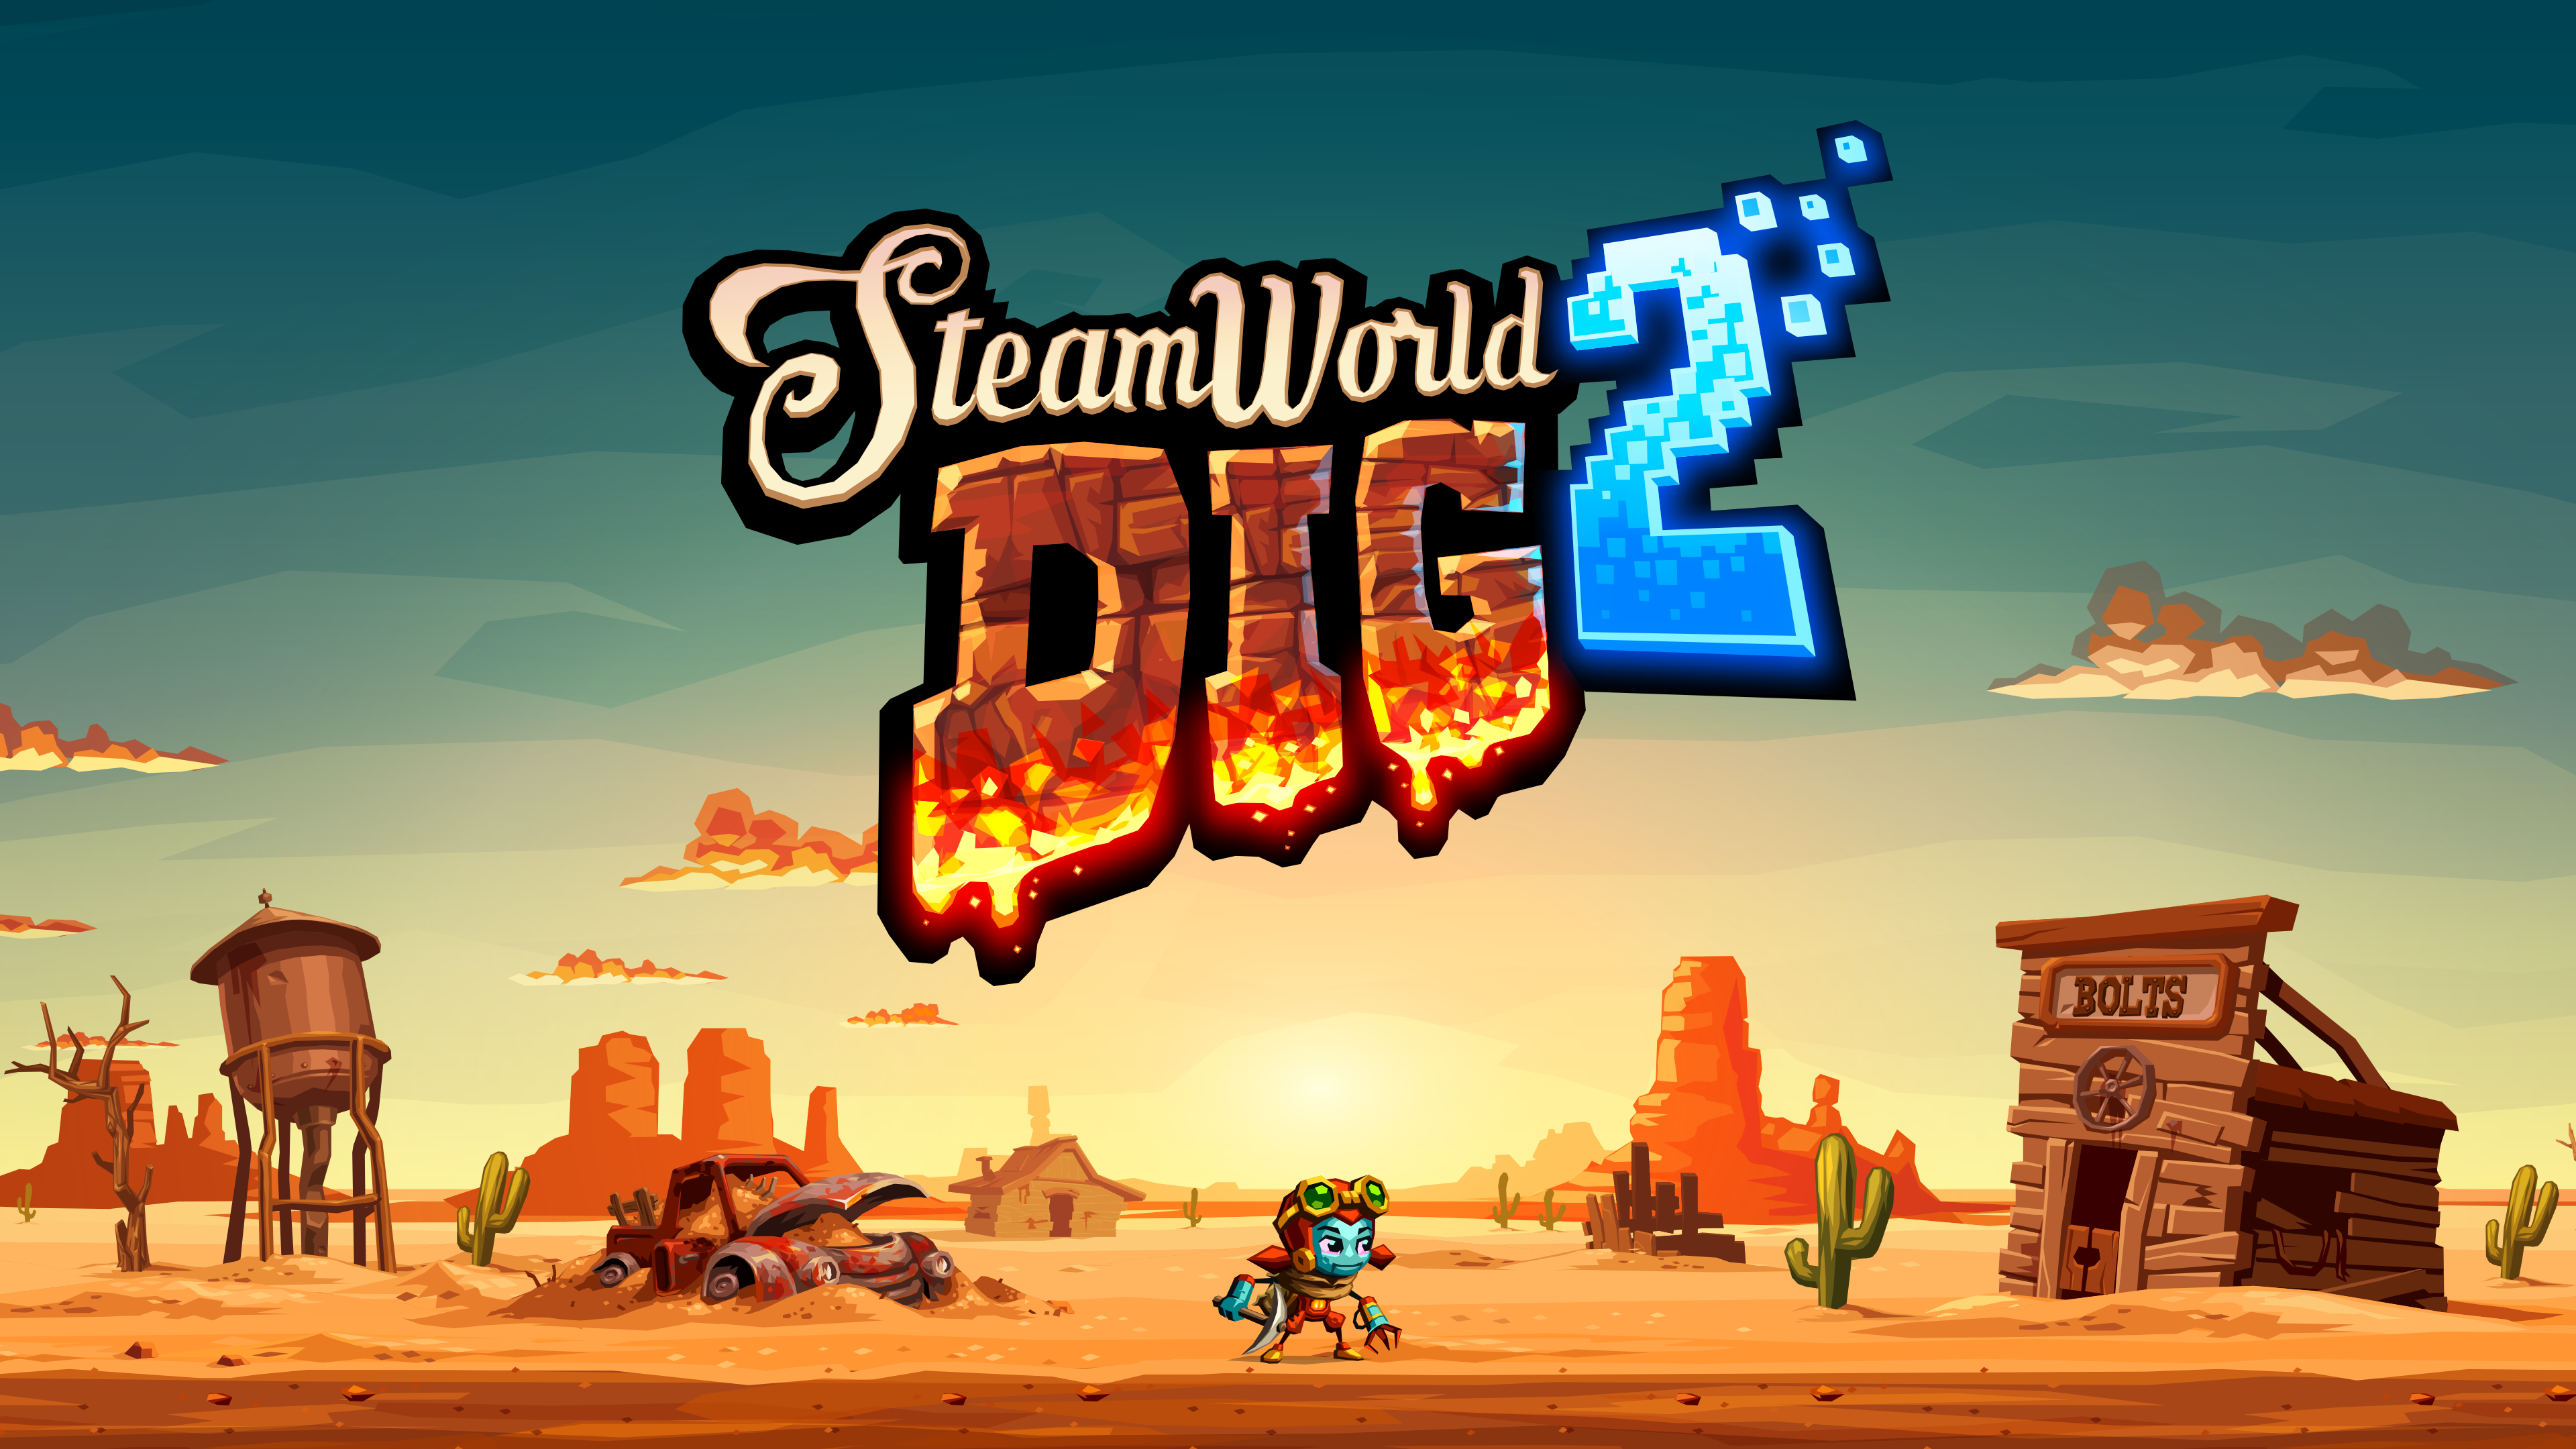 Here's The SteamWorld Dig 2 Launch Trailer